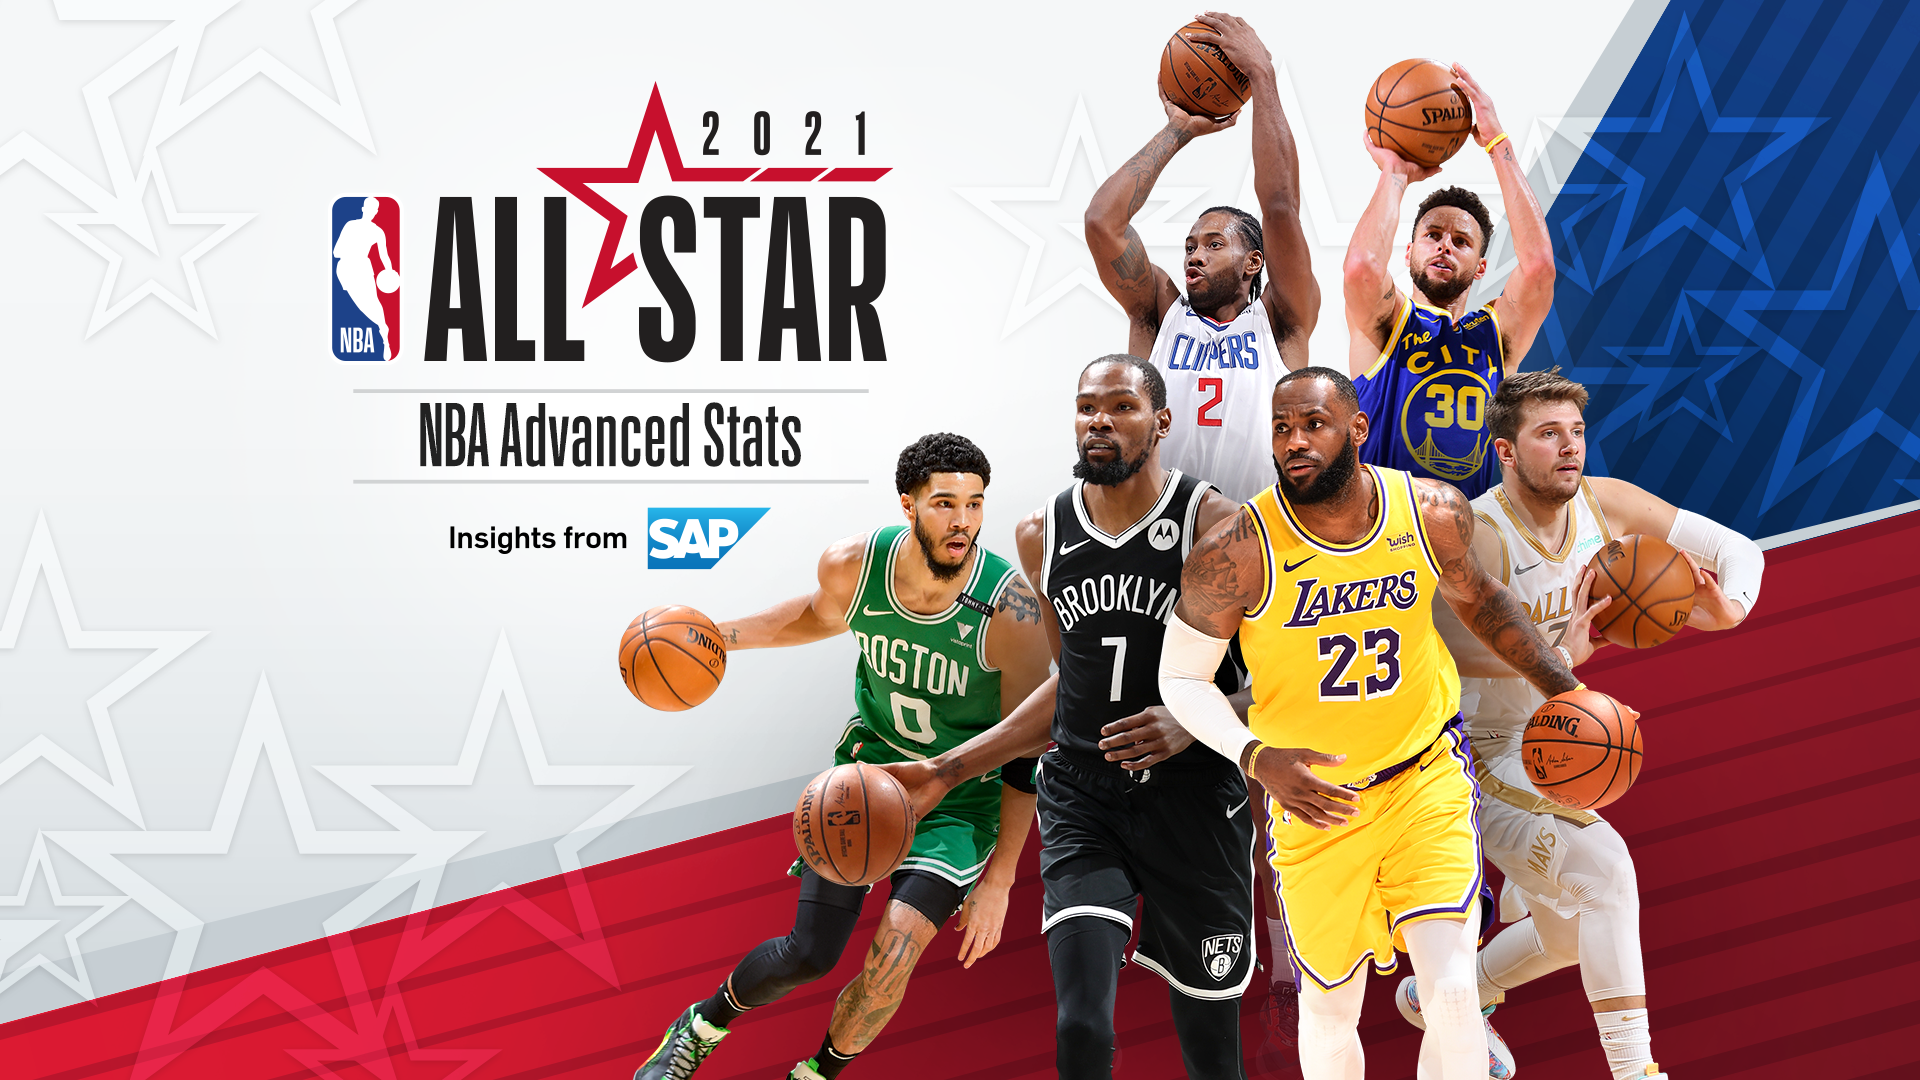 All-Star Infographic: Key stats to know for Sunday